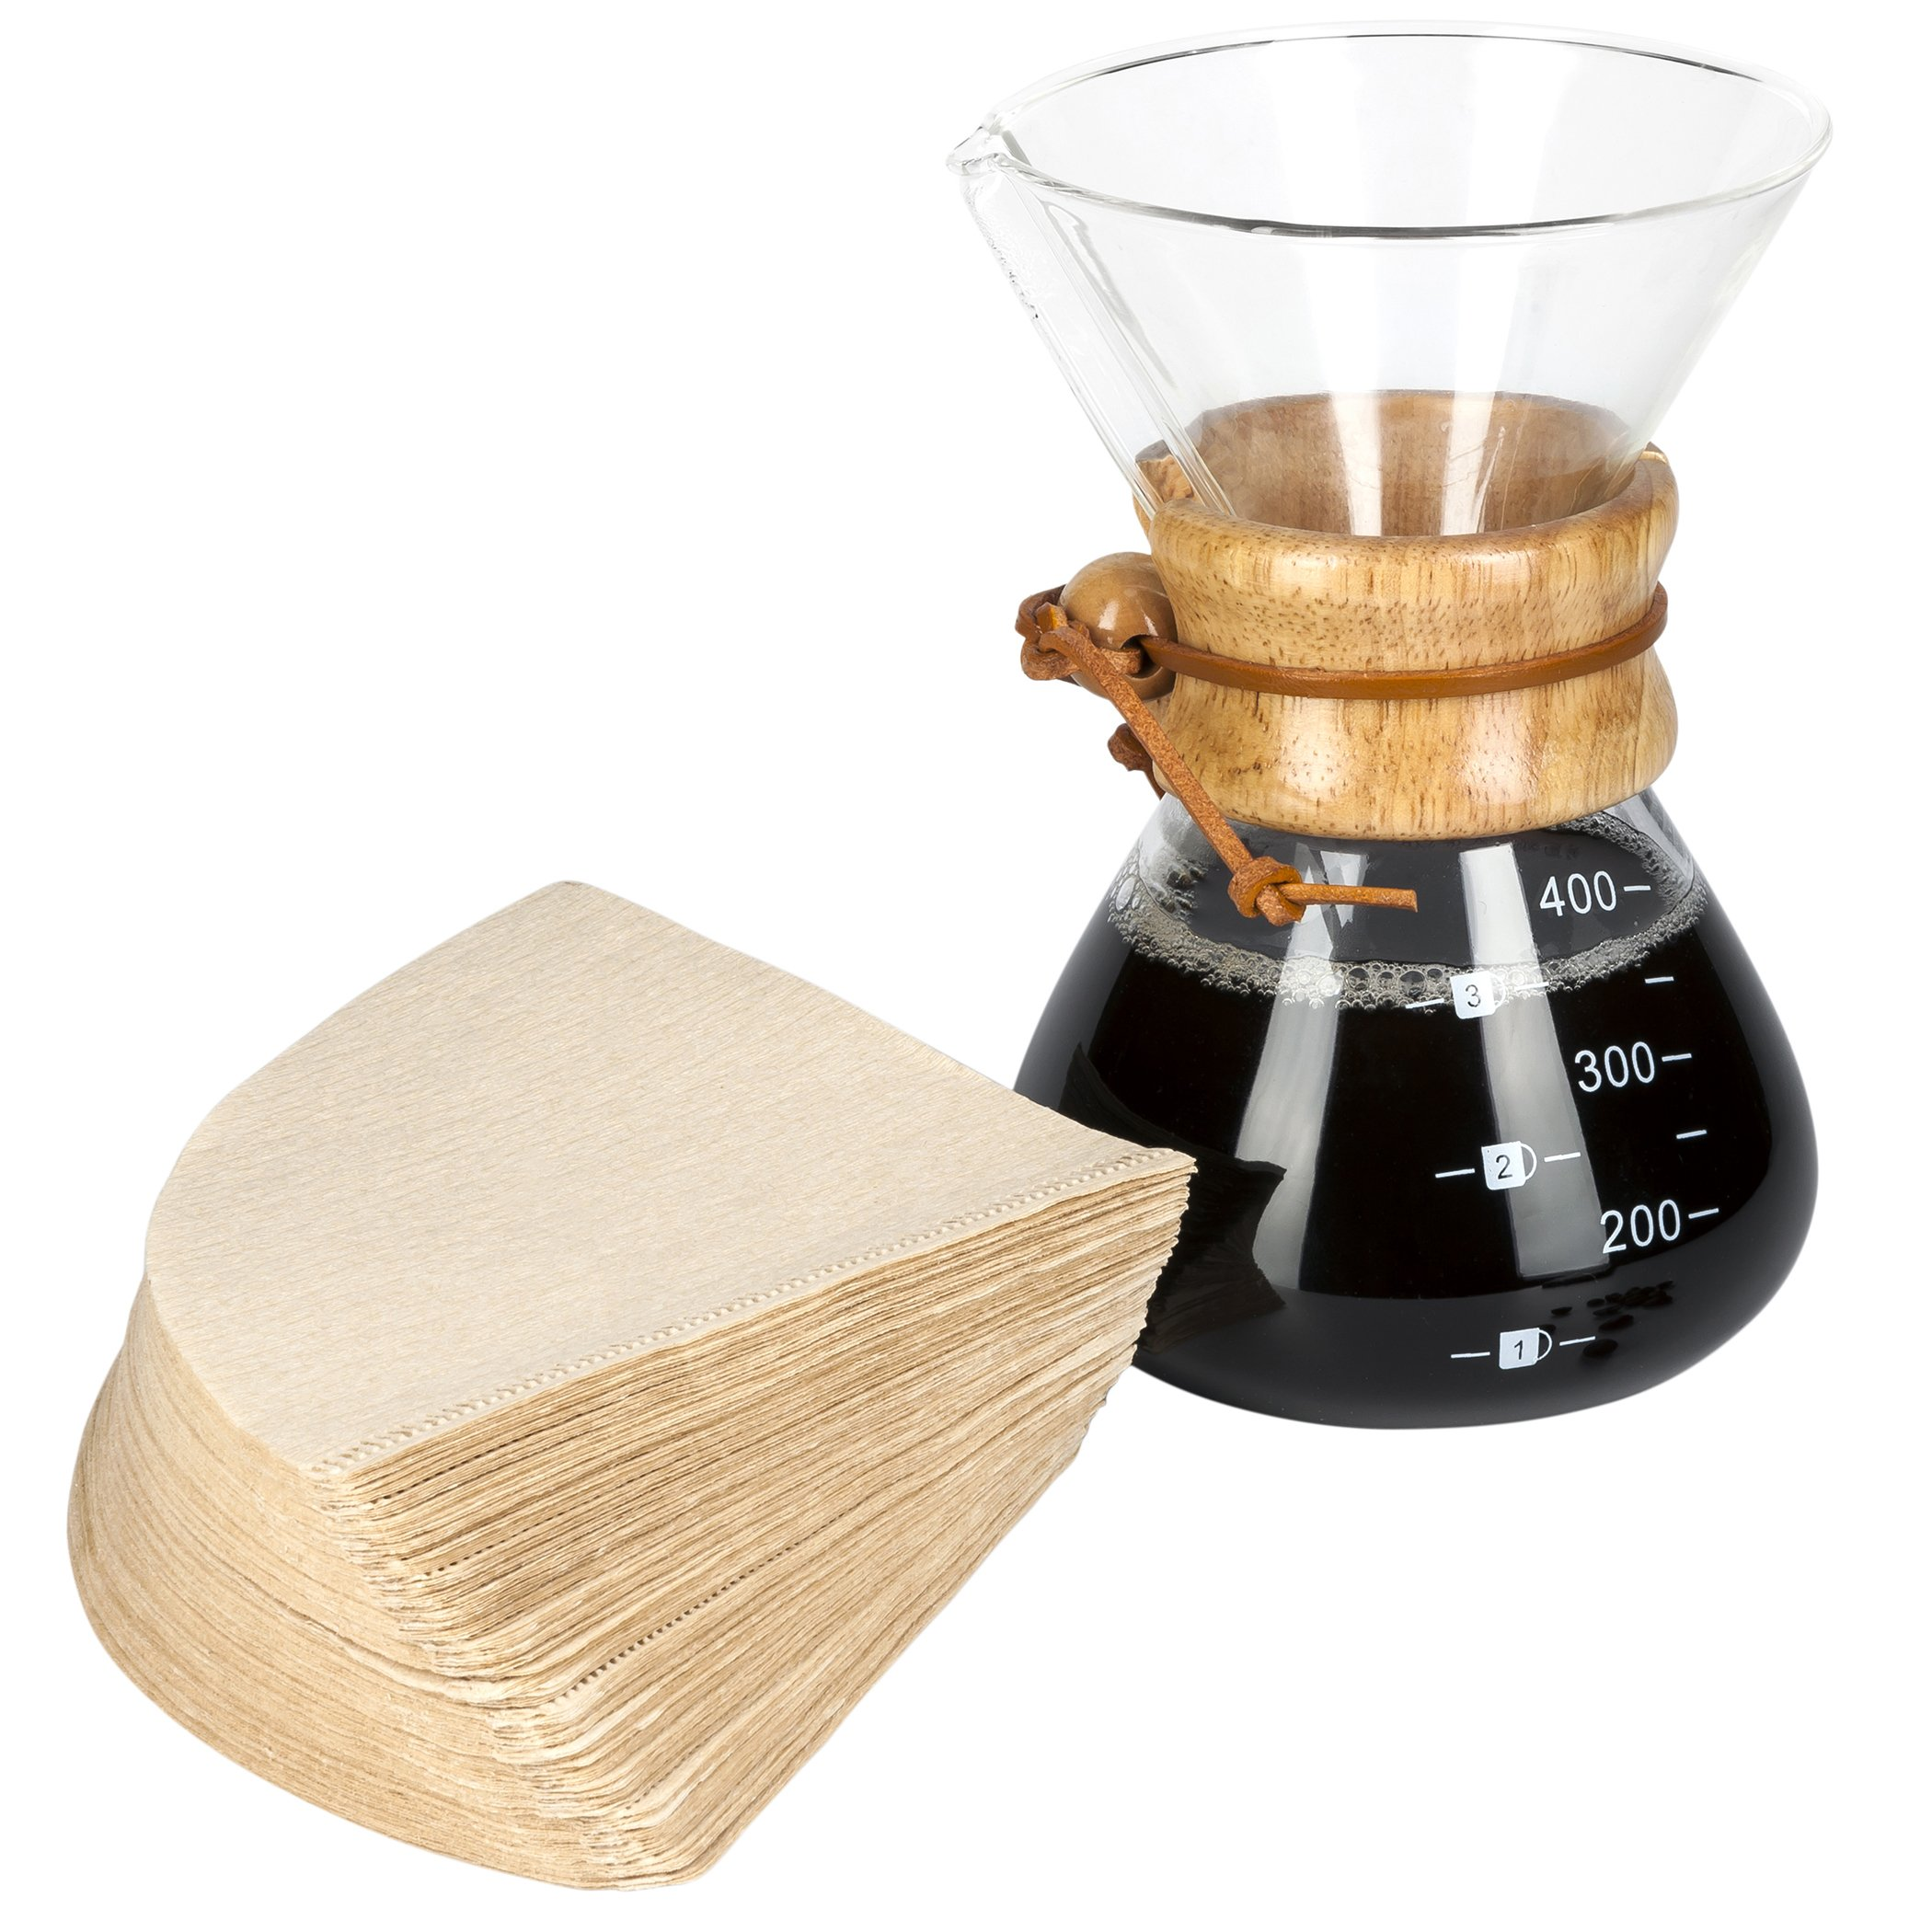 Pour Over Coffee Maker - with 100 Paper Filters - by LVKH (13.5 Oz, 1 Cup)